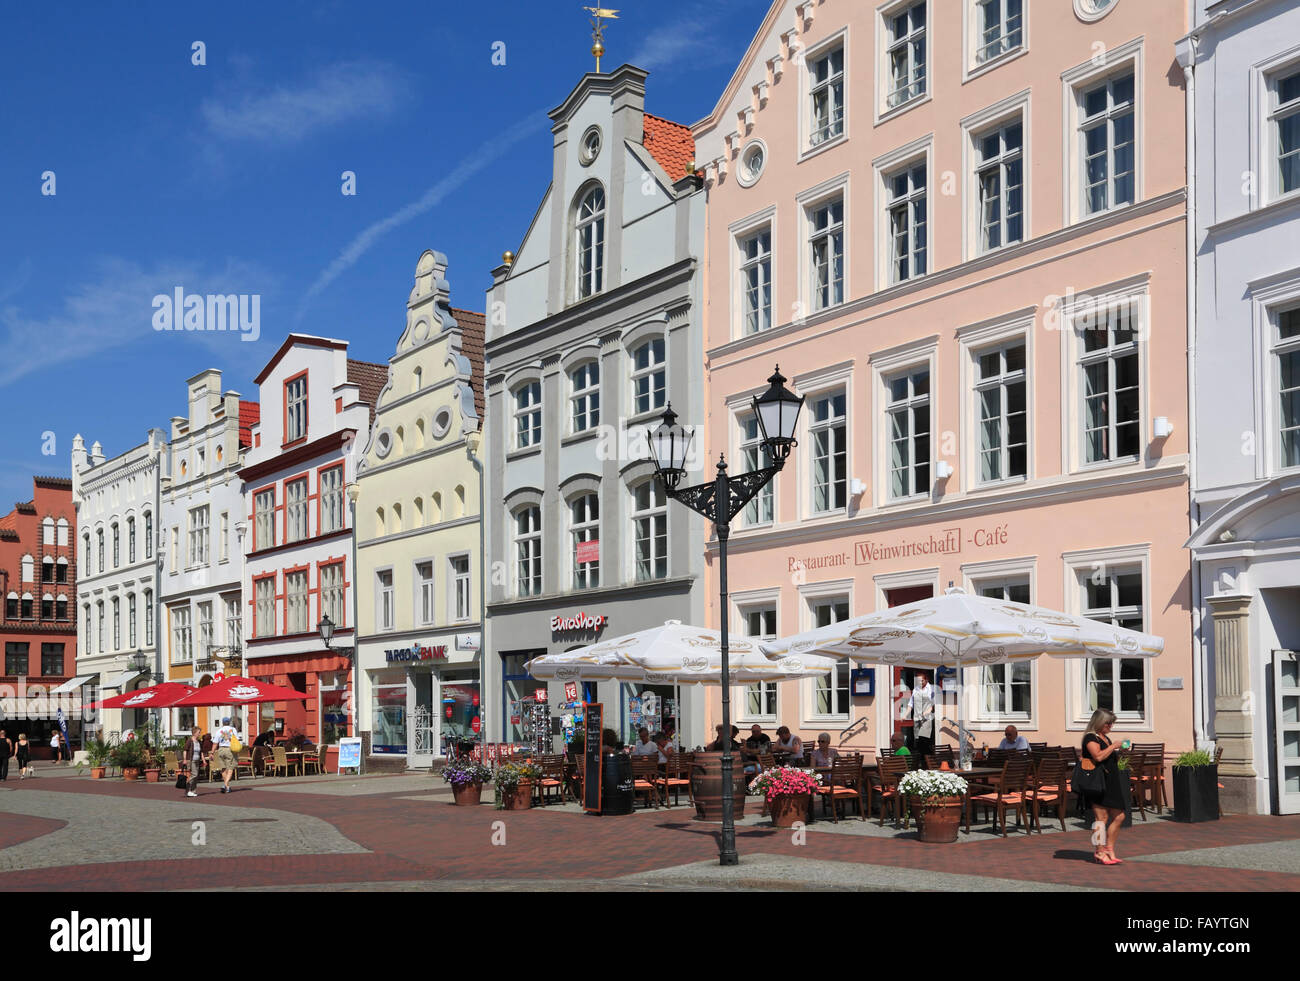 Houses with cafes and restaurants at market square, Wismar, Baltic Sea, Mecklenburg Western Pomerania, Germany, Stock Photo